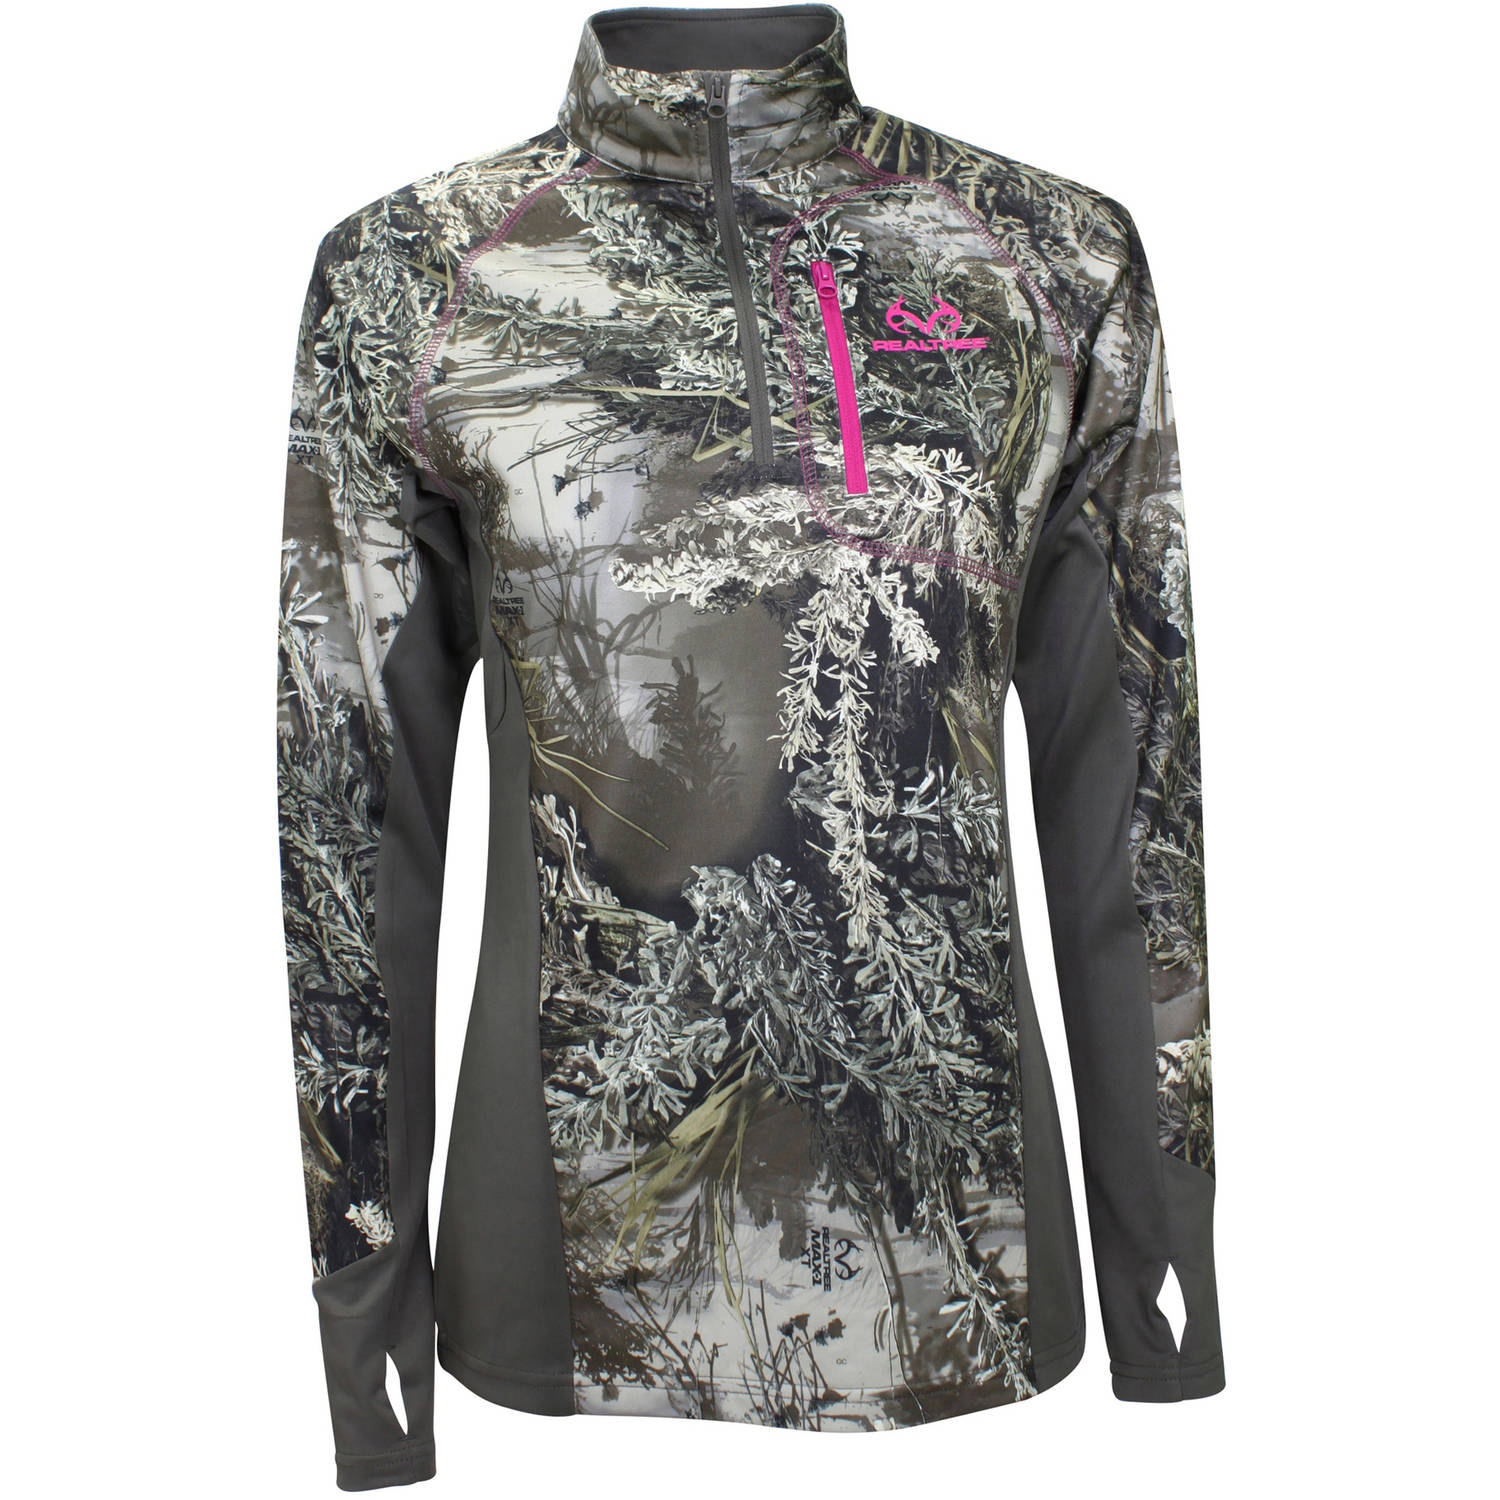 REALTREE LDS QTR ZIP - REALTREE MAX-1 XT